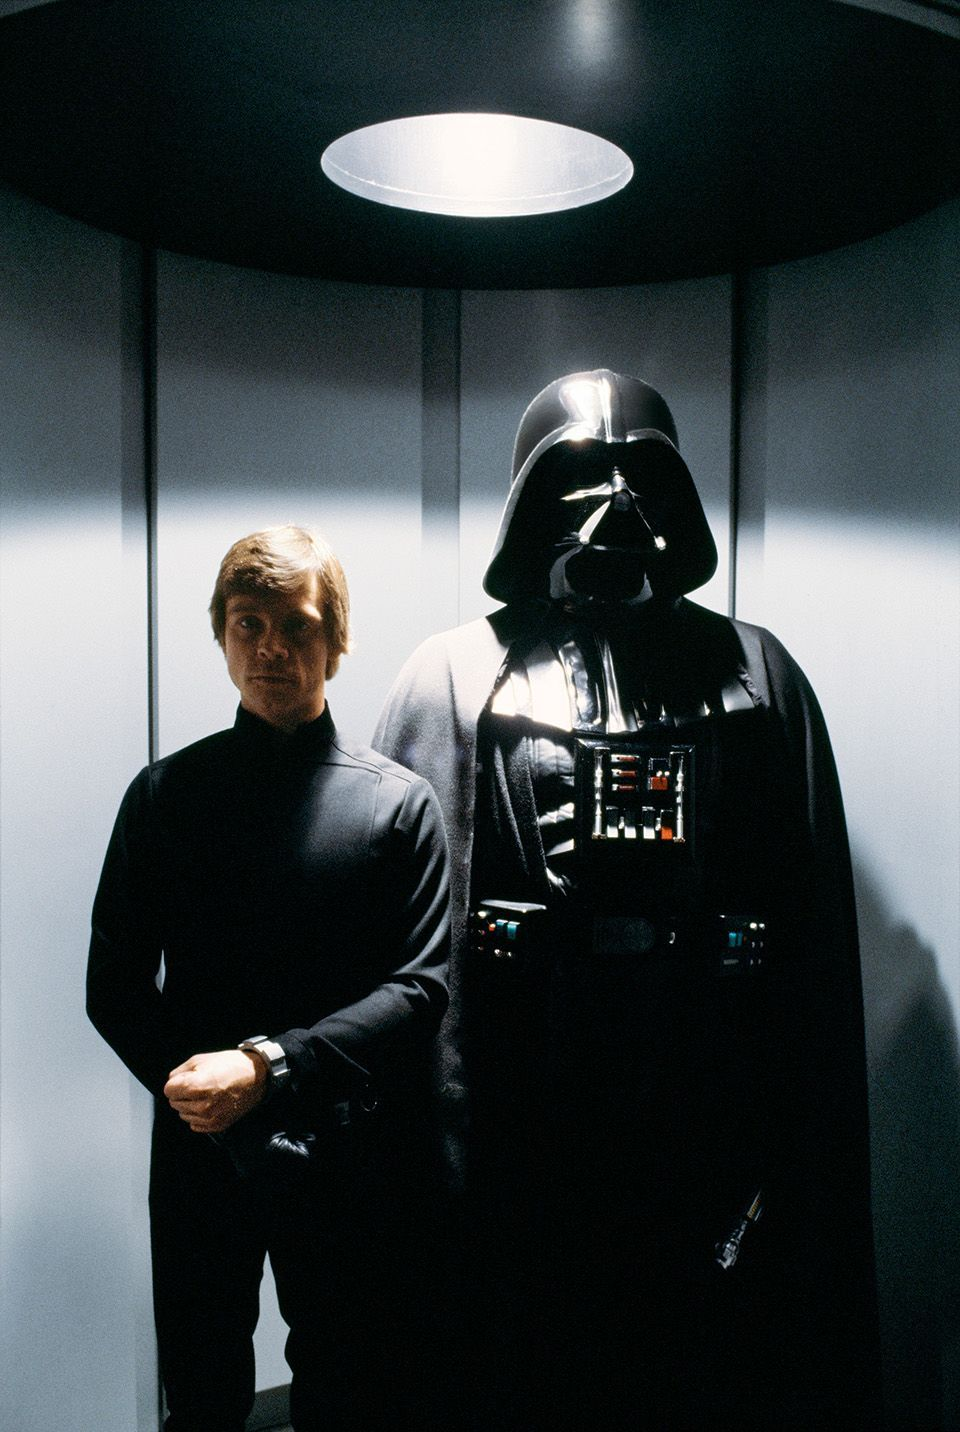 Step Behind the Scenes of the Original Star Wars Trilogy With These Amazing Archival Photos